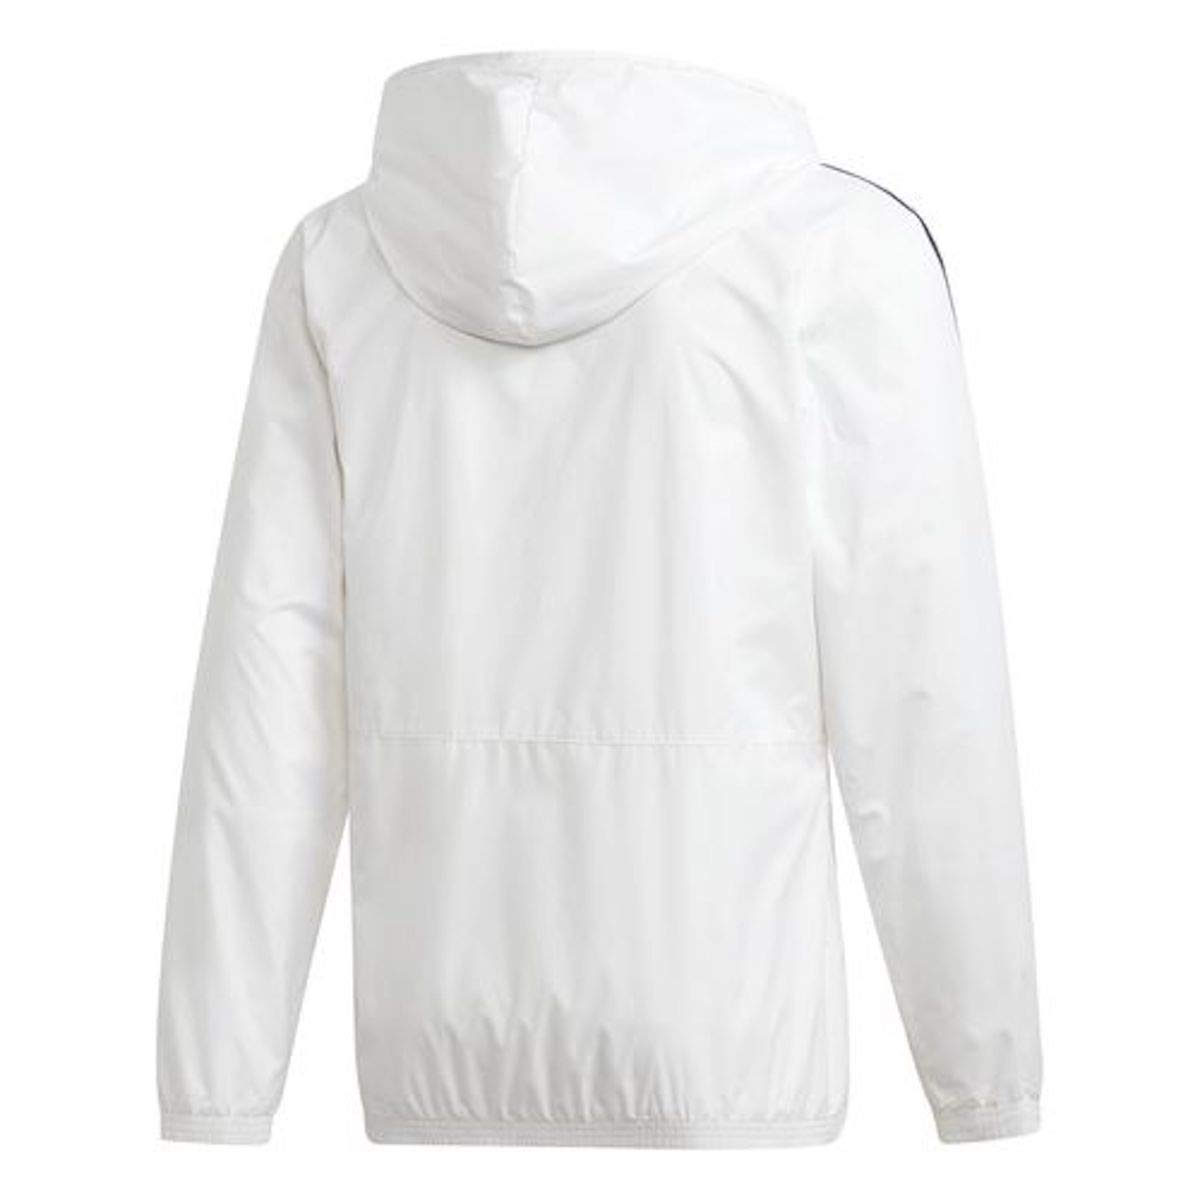 adidas Men's Essentials Wind Jacket (Medium, White/Grey) by adidas (Image #2)